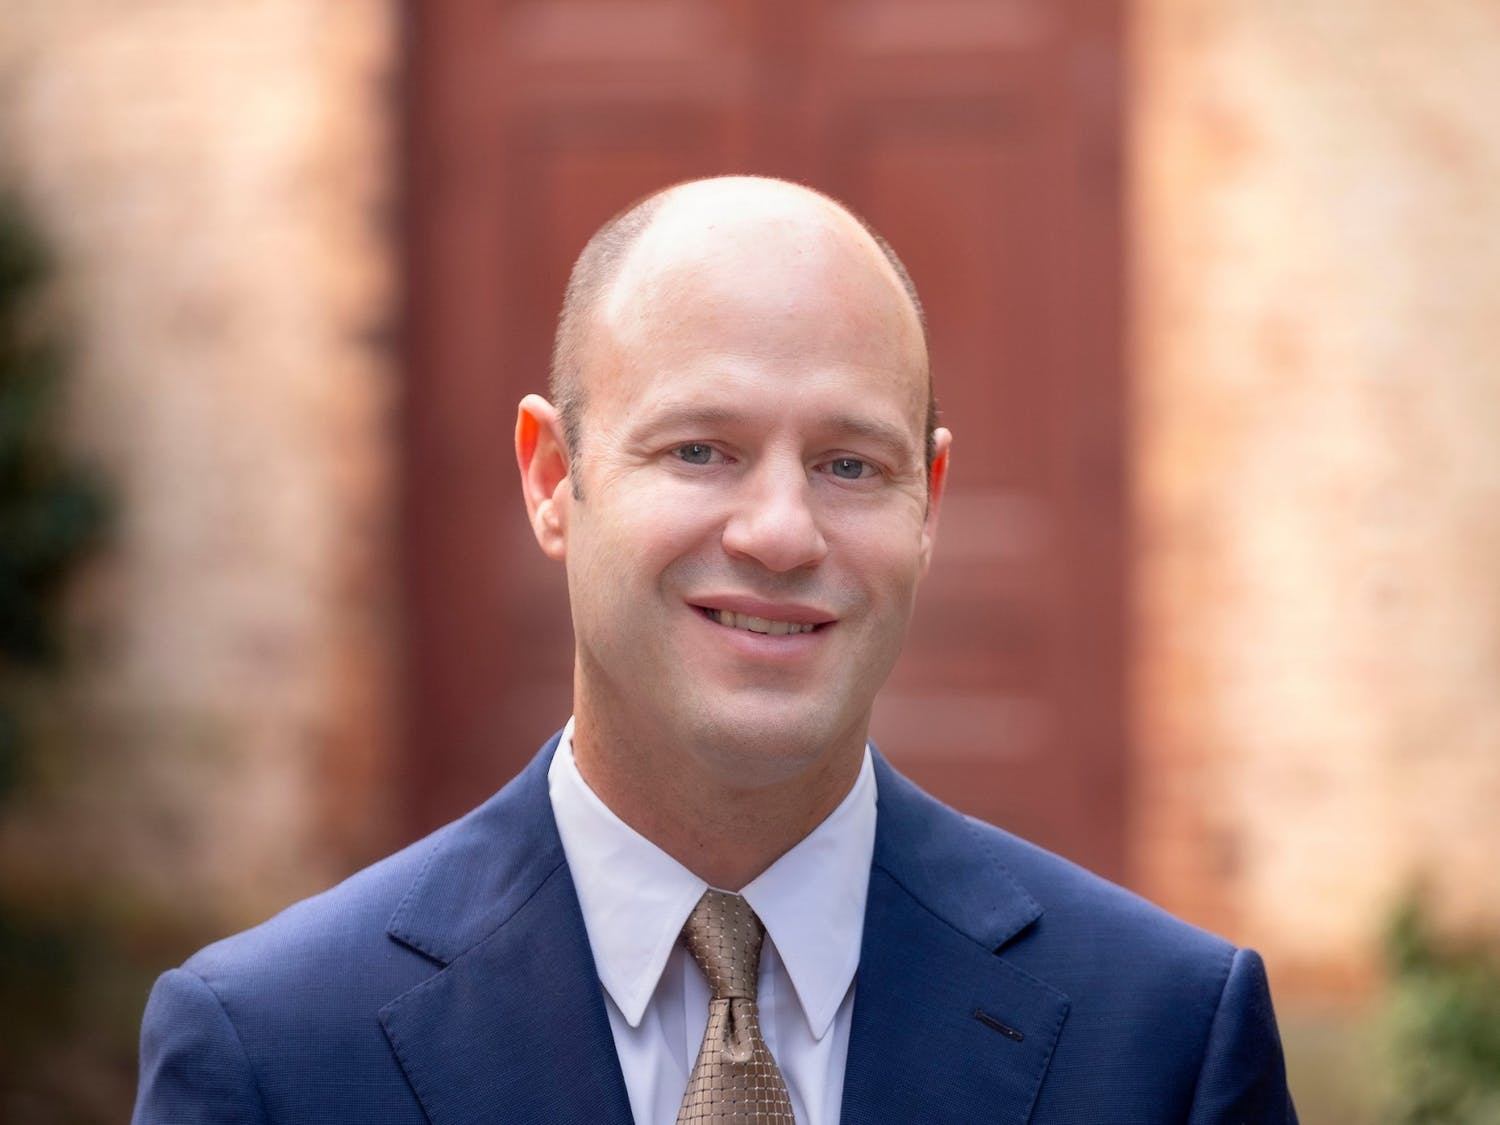 Nathan Knuffman was recently named chief financial officer and vice chancellor for finance and operations. Photo courtesy of Jon Gardiner/UNC-Chapel Hill.